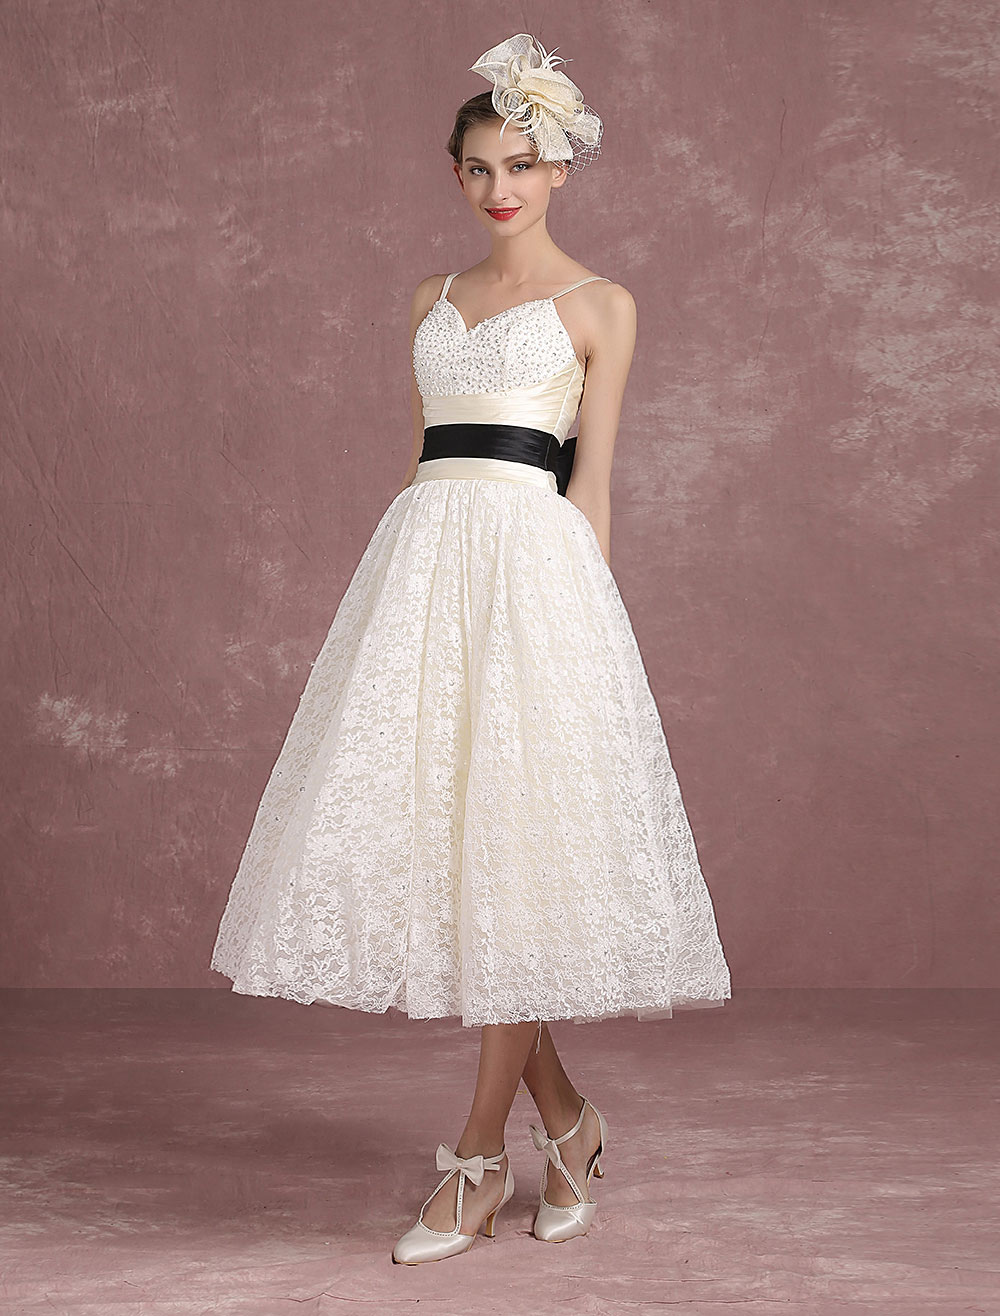 Summer wedding dresses 2018 lace vintage ivory bridal gown for Cheap ivory wedding dresses